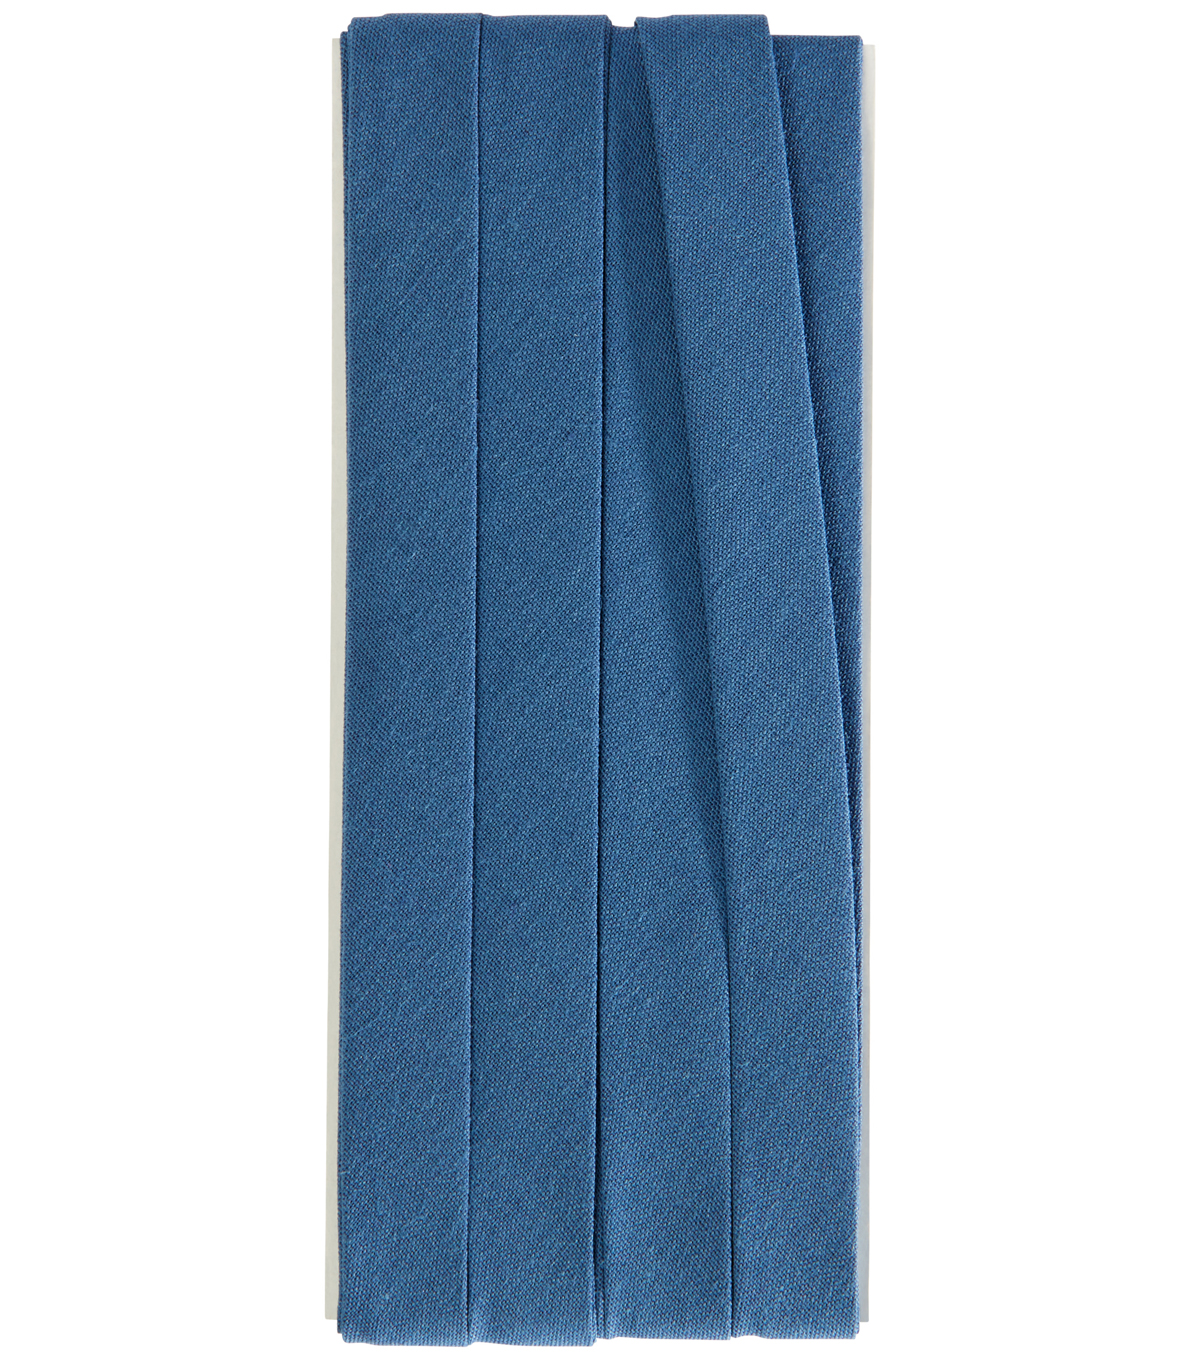 Wrights Extra Wide Double Fold Bias Tape, Stone Blue